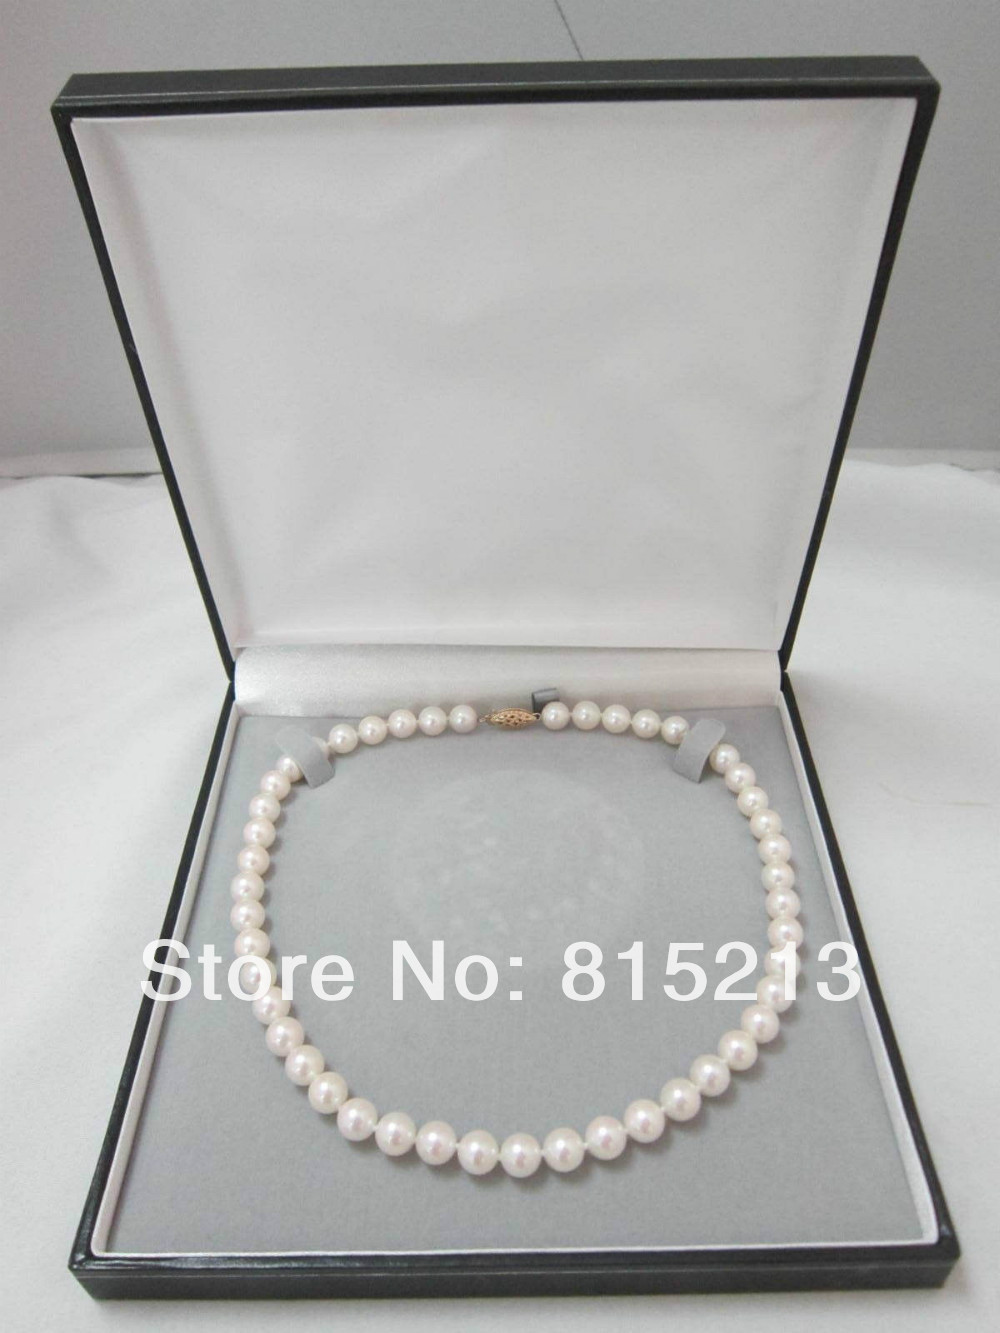 FREE SHIPPING>@@> N1195 New Yellow Gold 7.5-8mm White Japanese Akoya Cultured Pearl Necklace AAAFREE SHIPPING>@@> N1195 New Yellow Gold 7.5-8mm White Japanese Akoya Cultured Pearl Necklace AAA